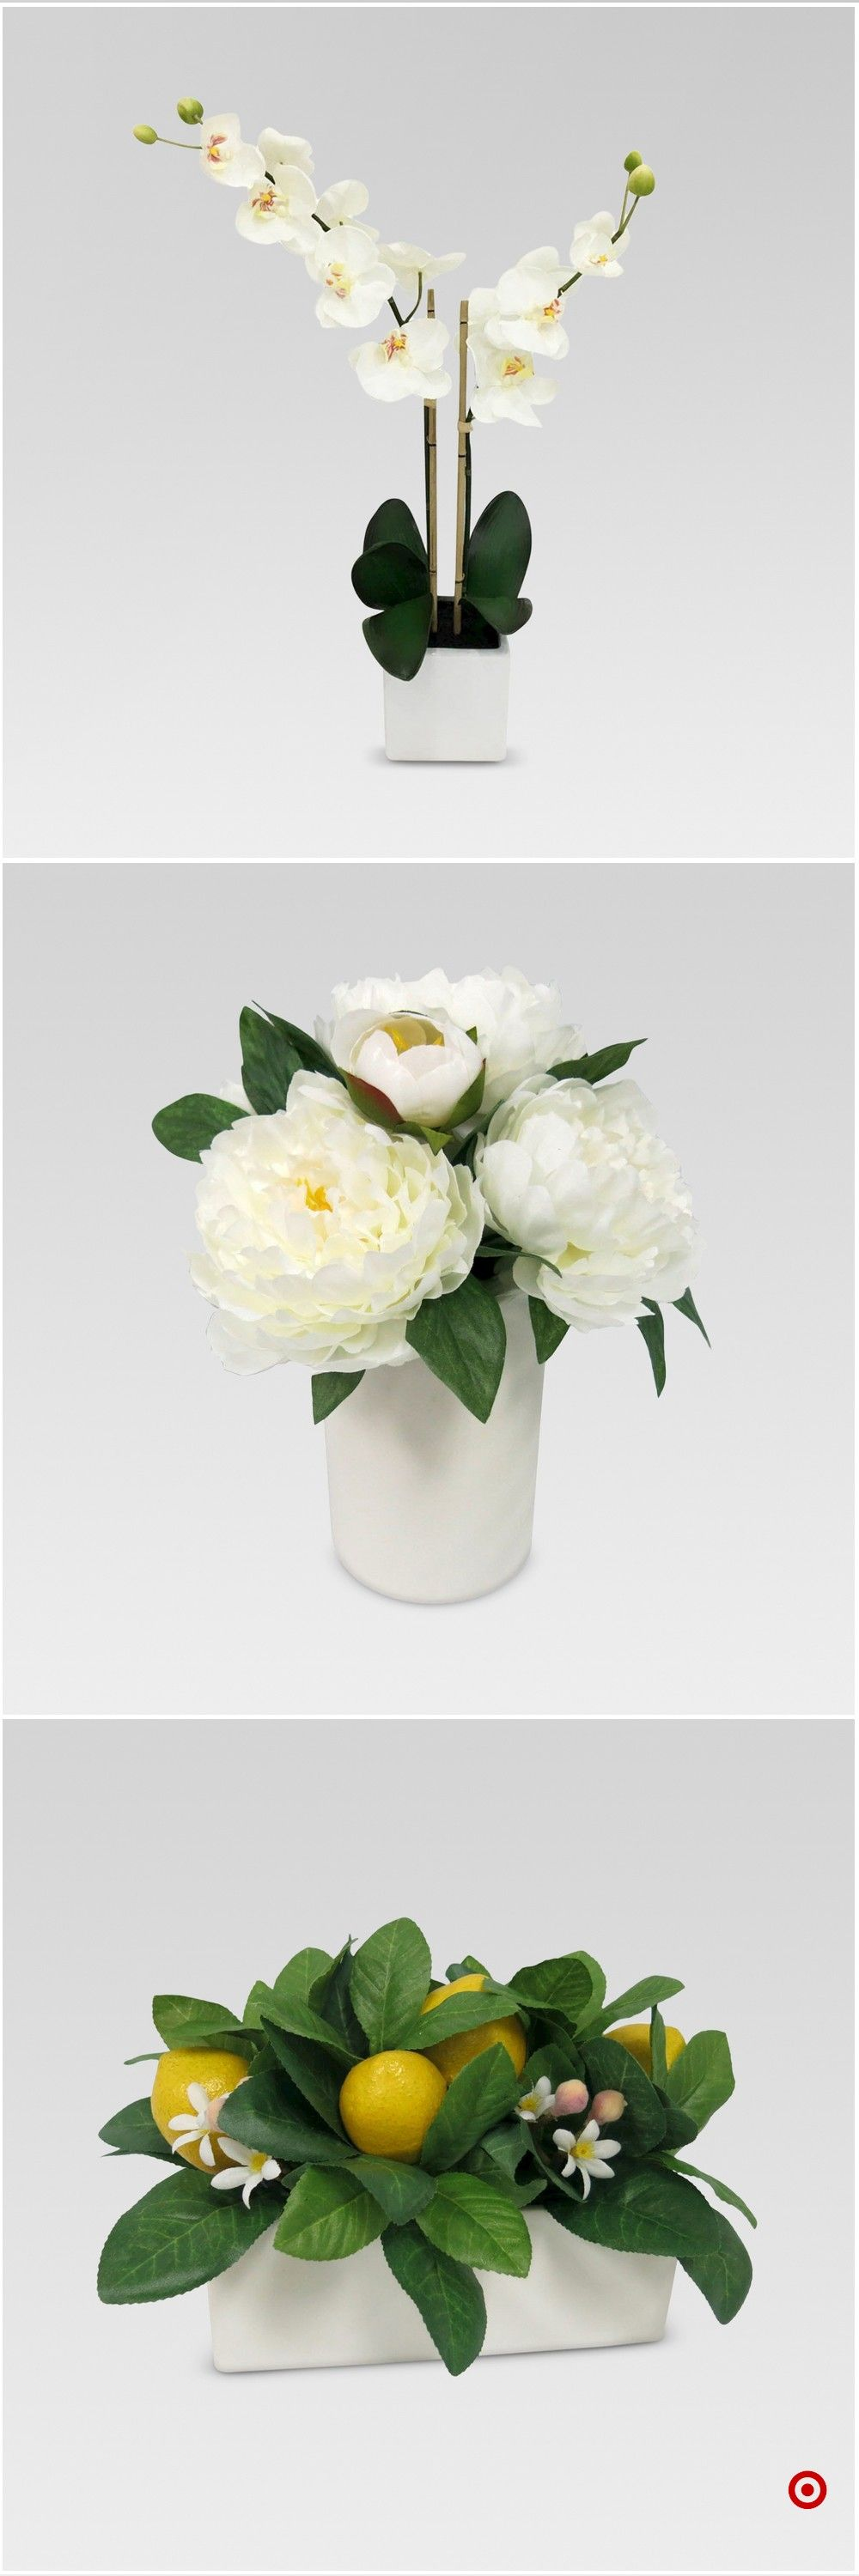 Shop Target For Artificial Arrangement You Will Love At Great Low Prices Free Shipping On Orders Of 35 Or Fre Fancy Flowers Flower Arrangements Floral Photo